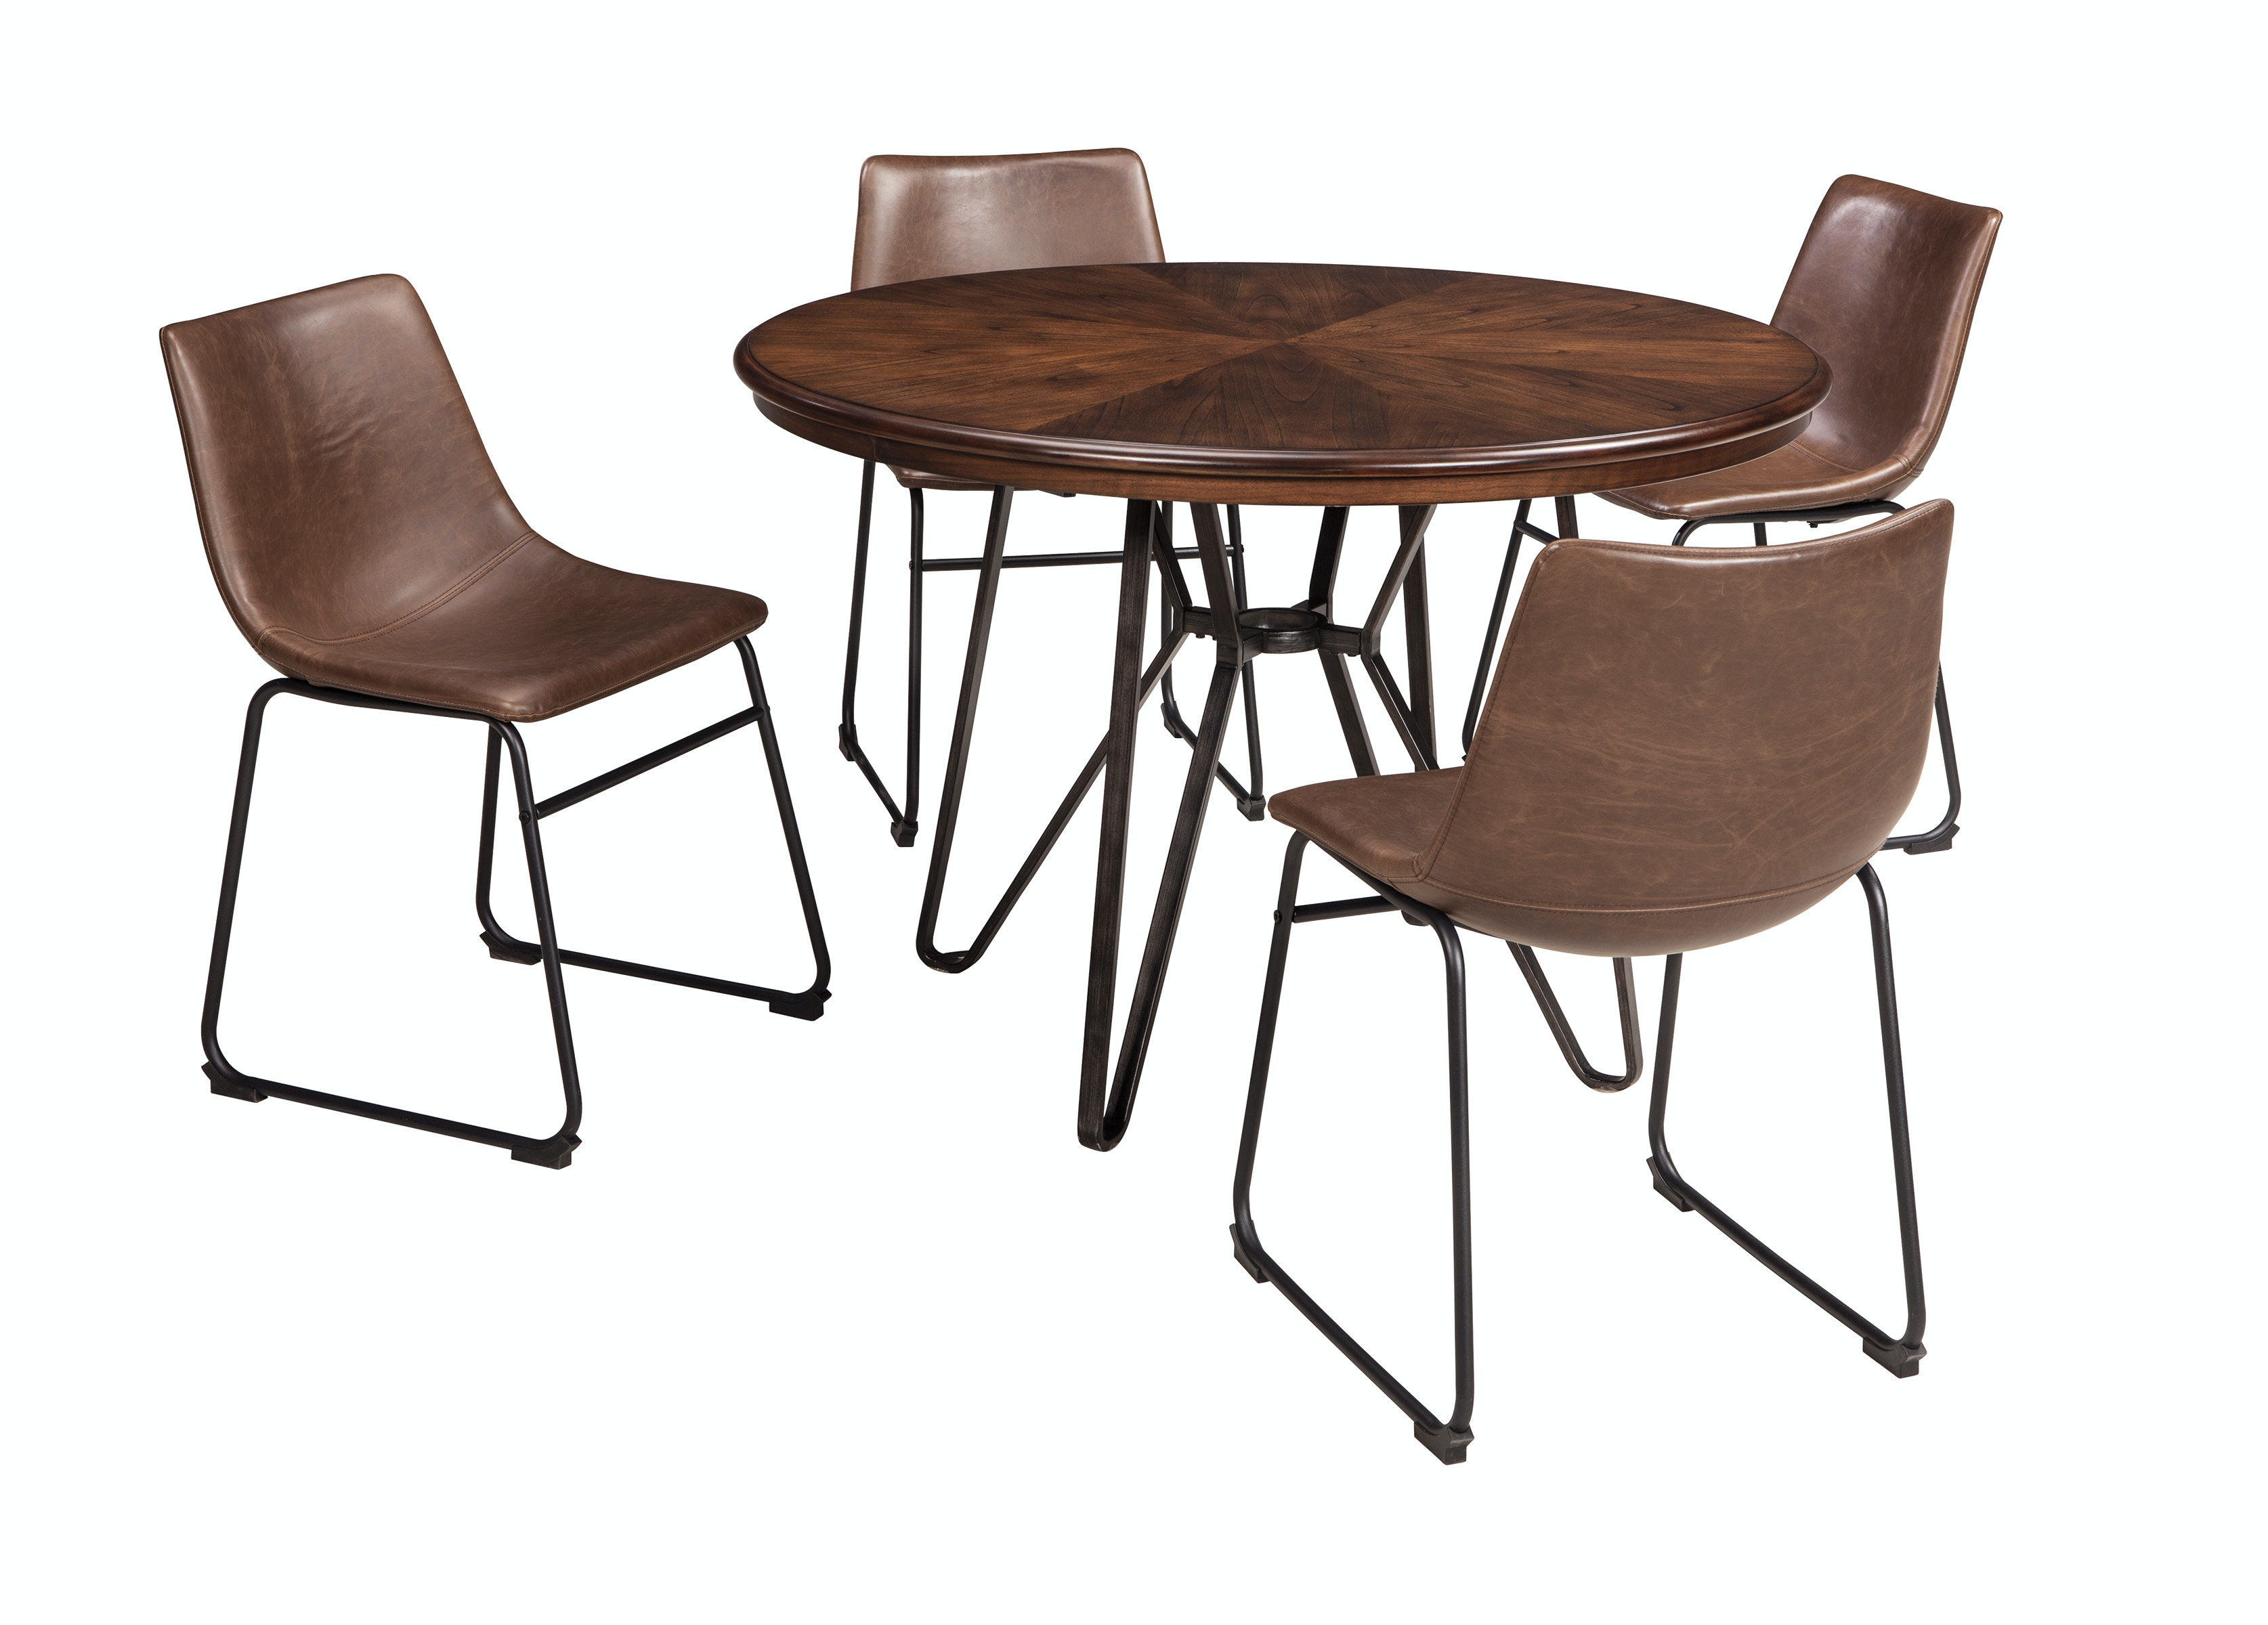 Tables And Chairs Houston Dining Room Furniture Houston Dining Room Chairs  Houston Dining Room Furniture Furniture